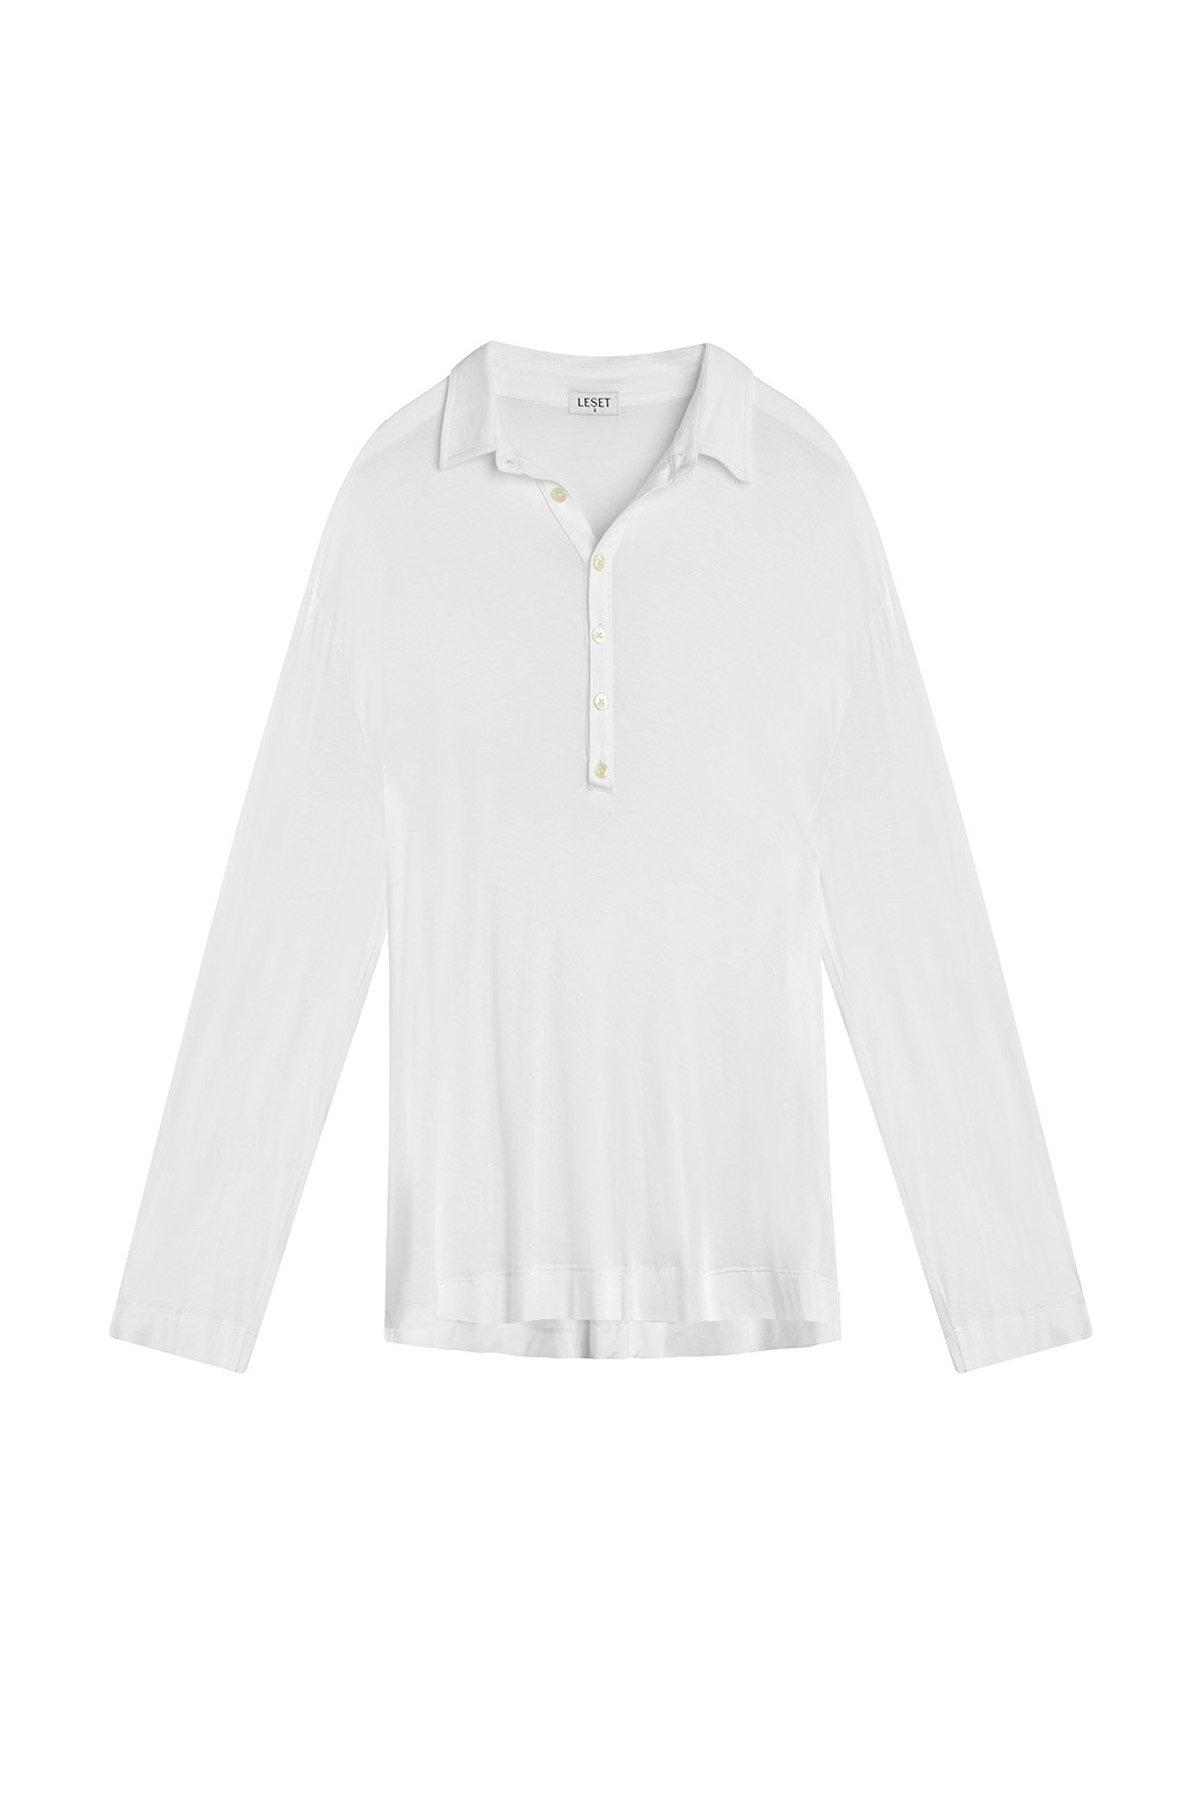 Nora Nuit Half Button Up - White 3